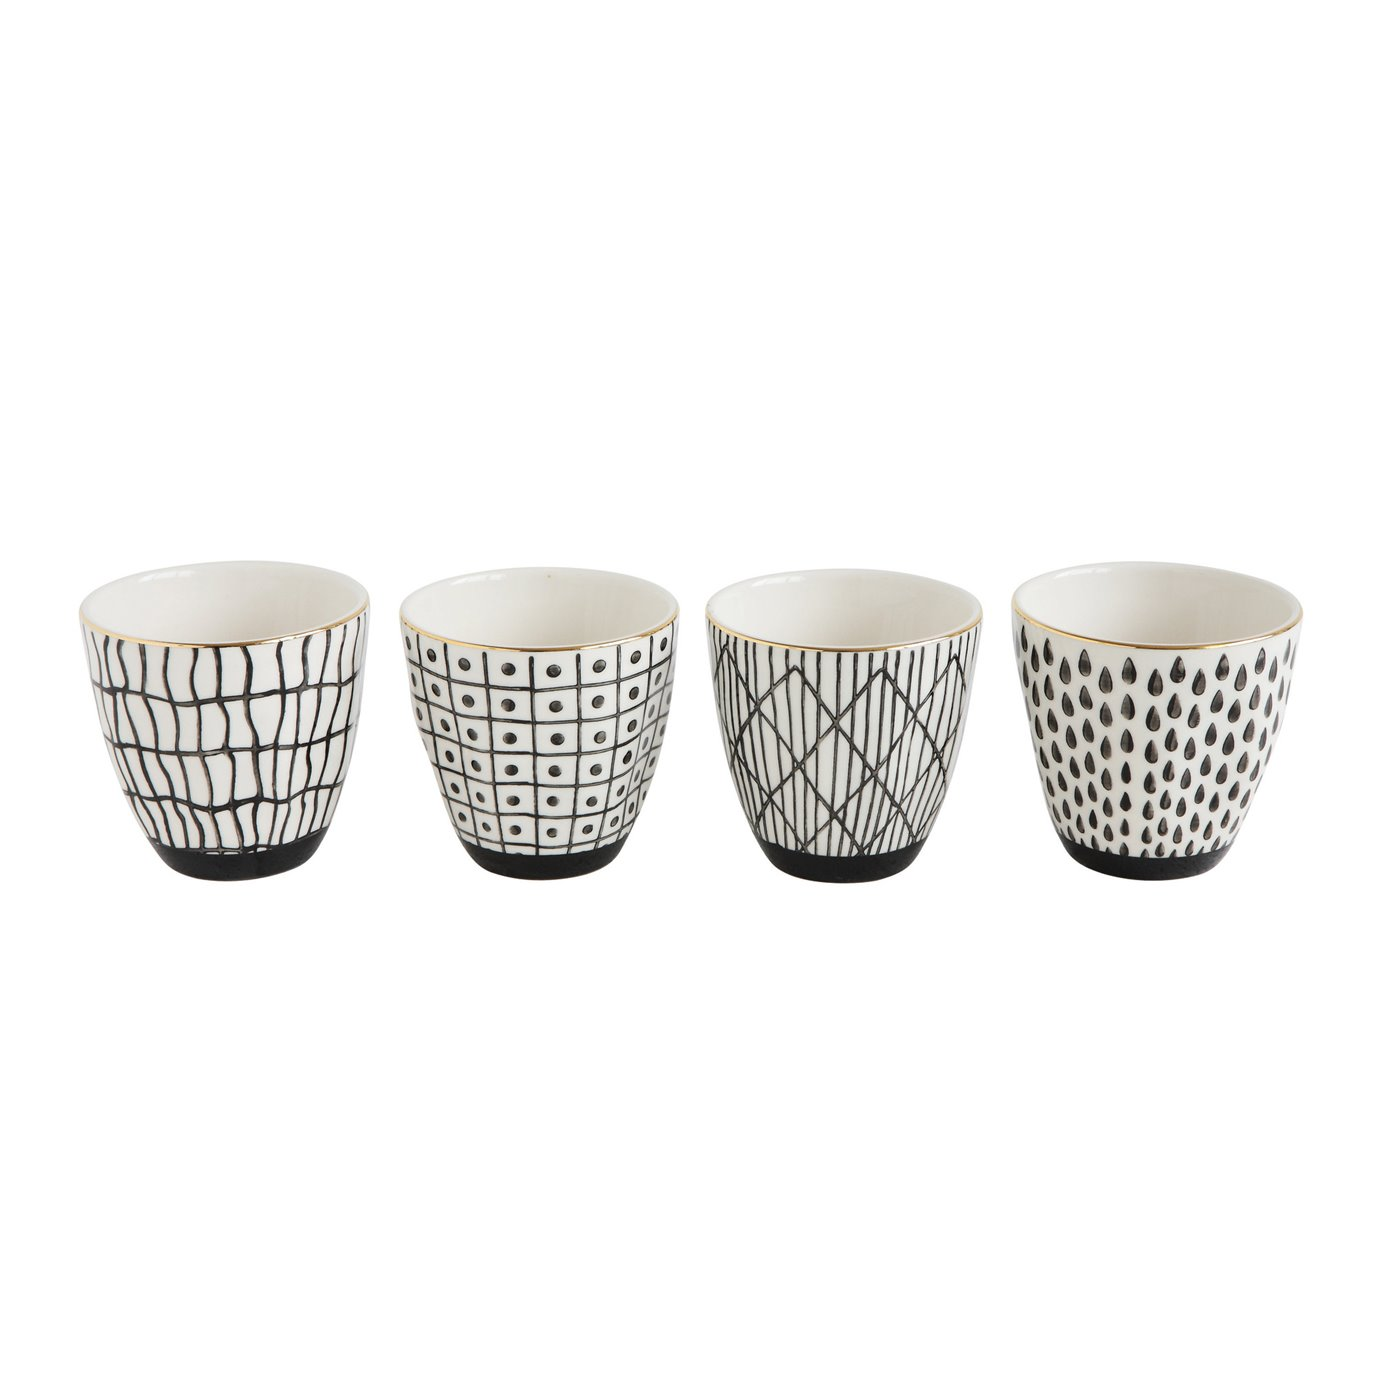 Black & White Stoneware Cup with Gold Electroplating (Set of 4 Designs)